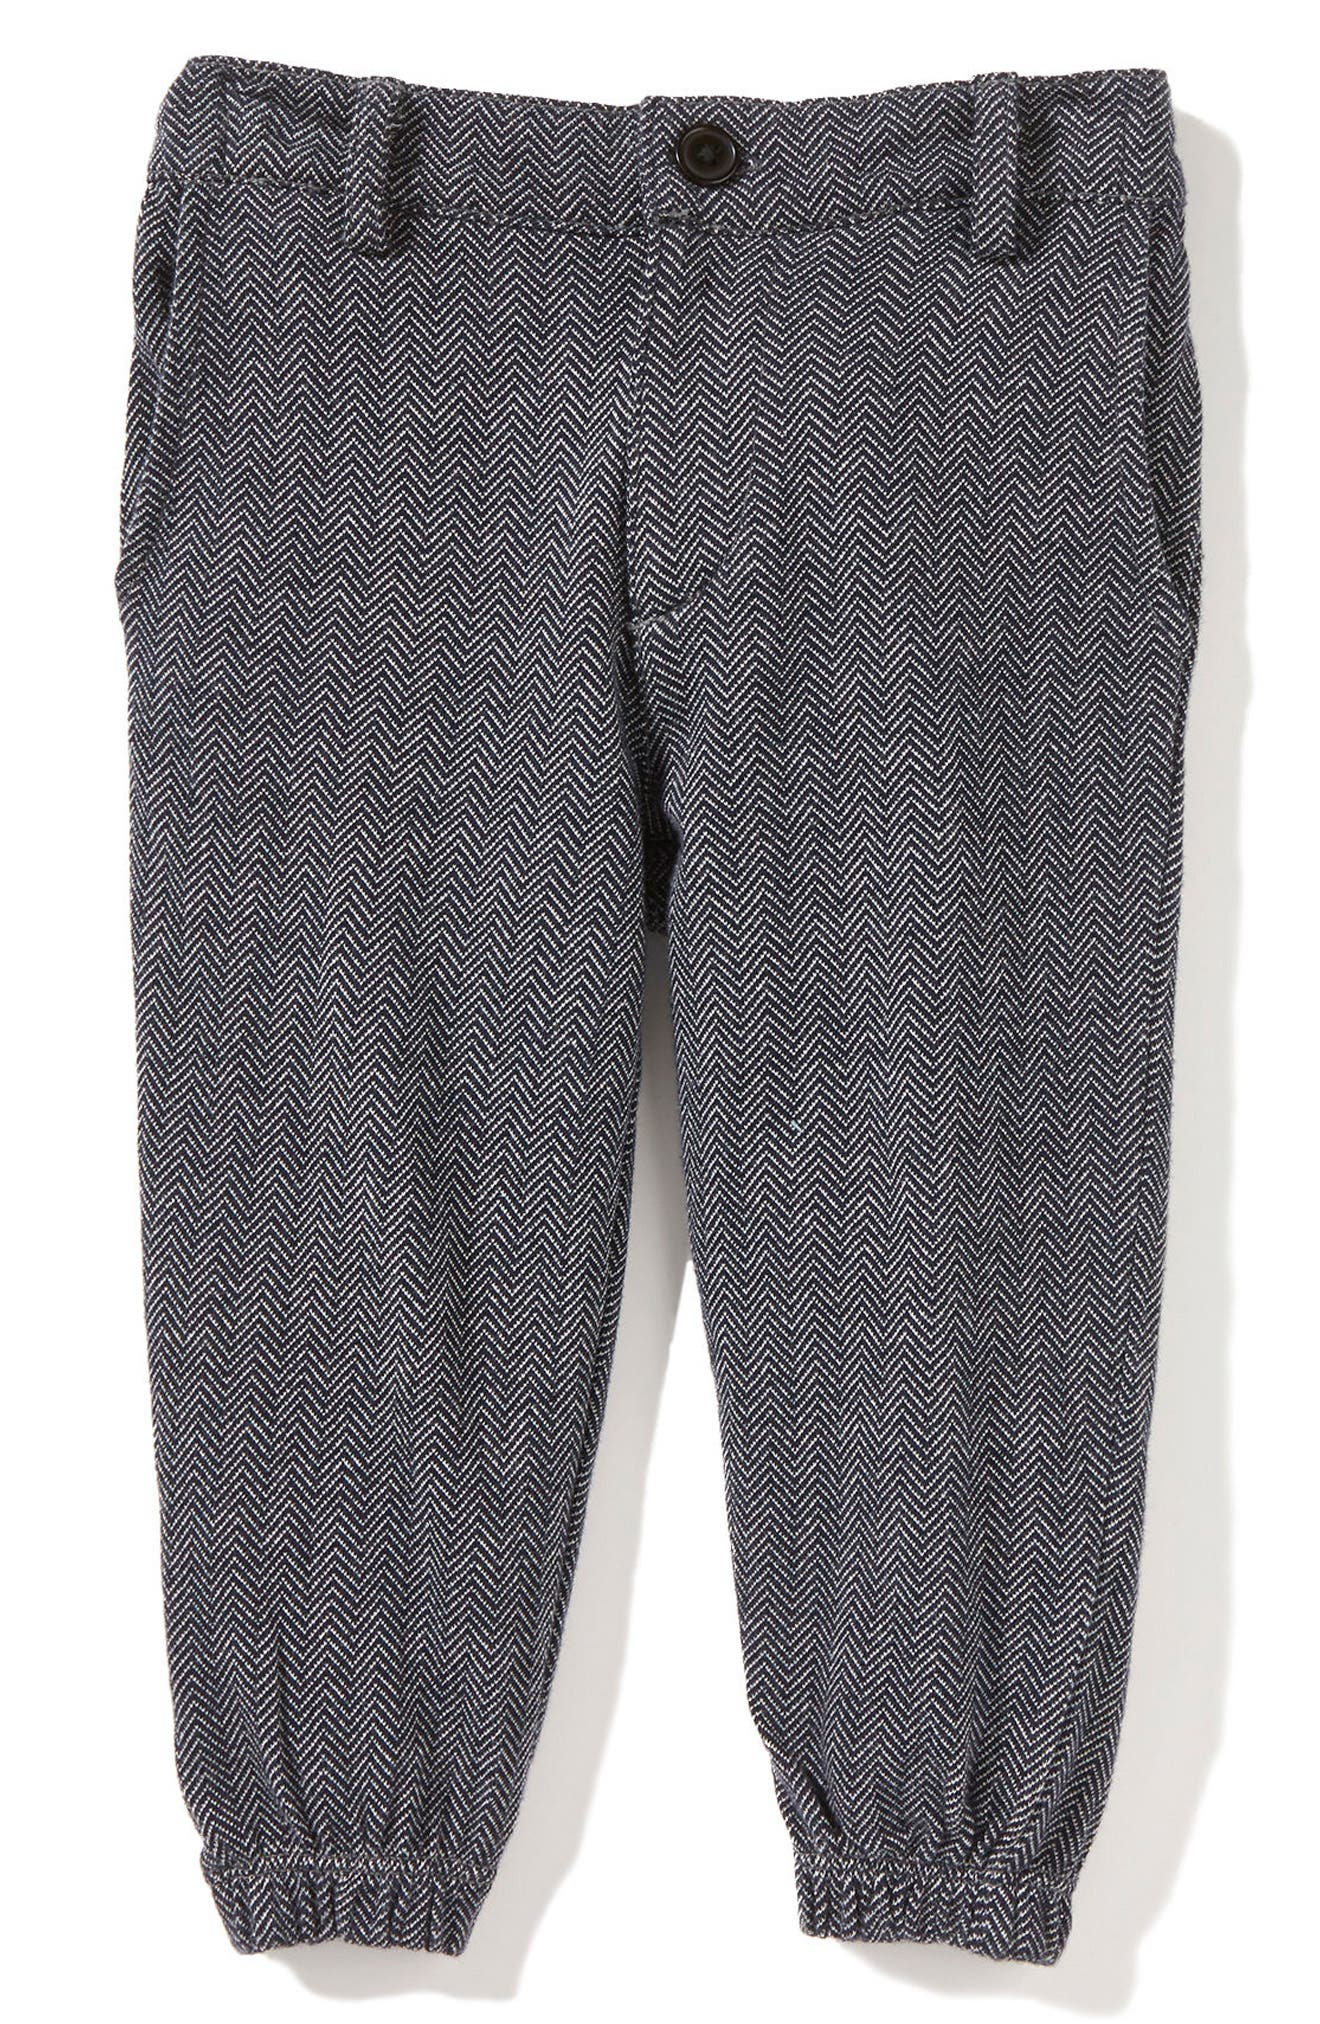 Peek Herringbone Jogger Pants (Baby Boys)